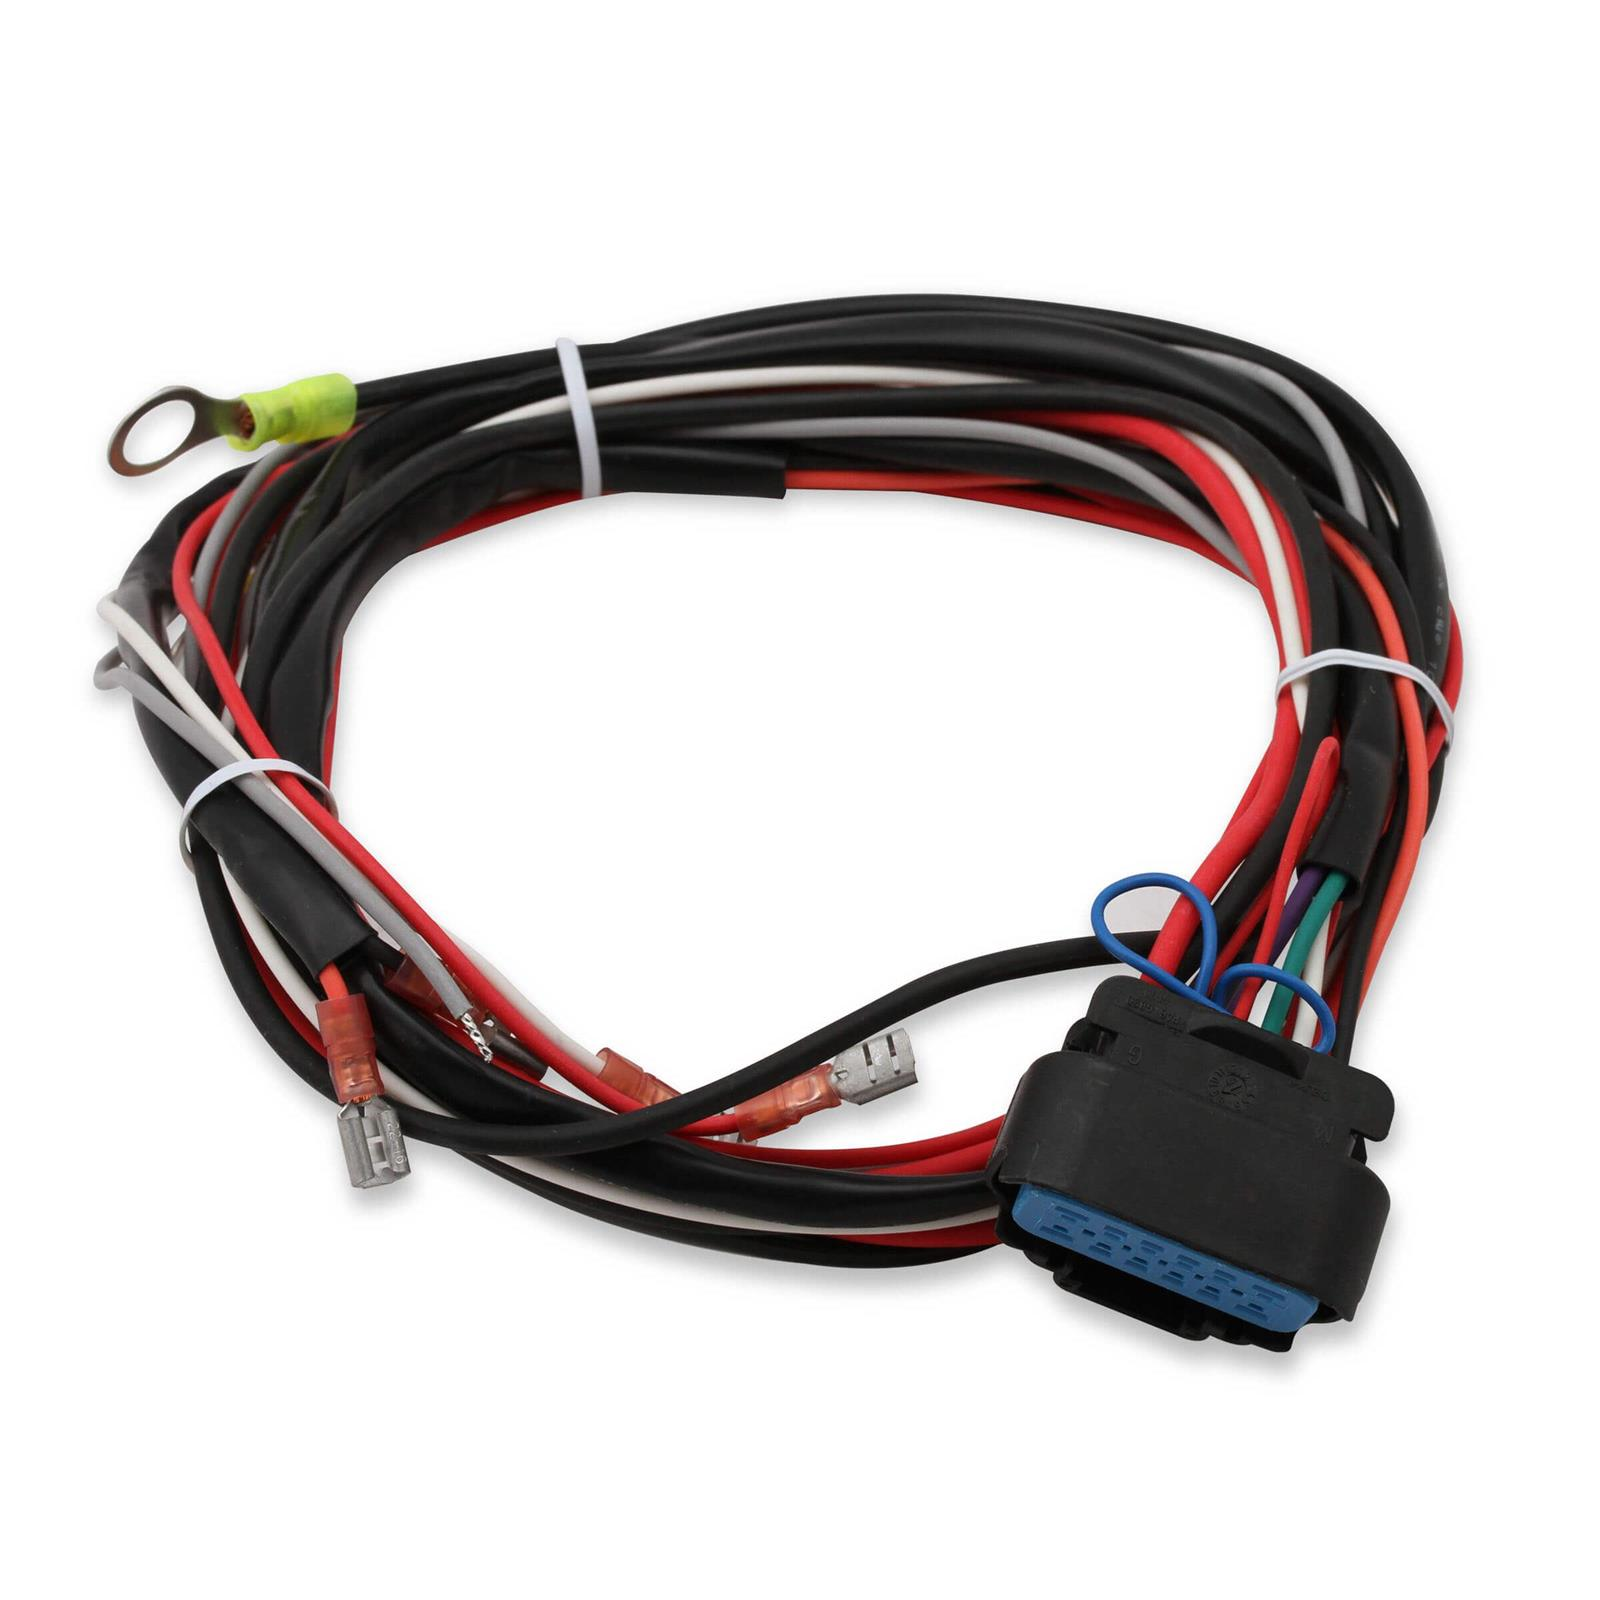 msd 8897 replacement ignition control harness  speedway motors